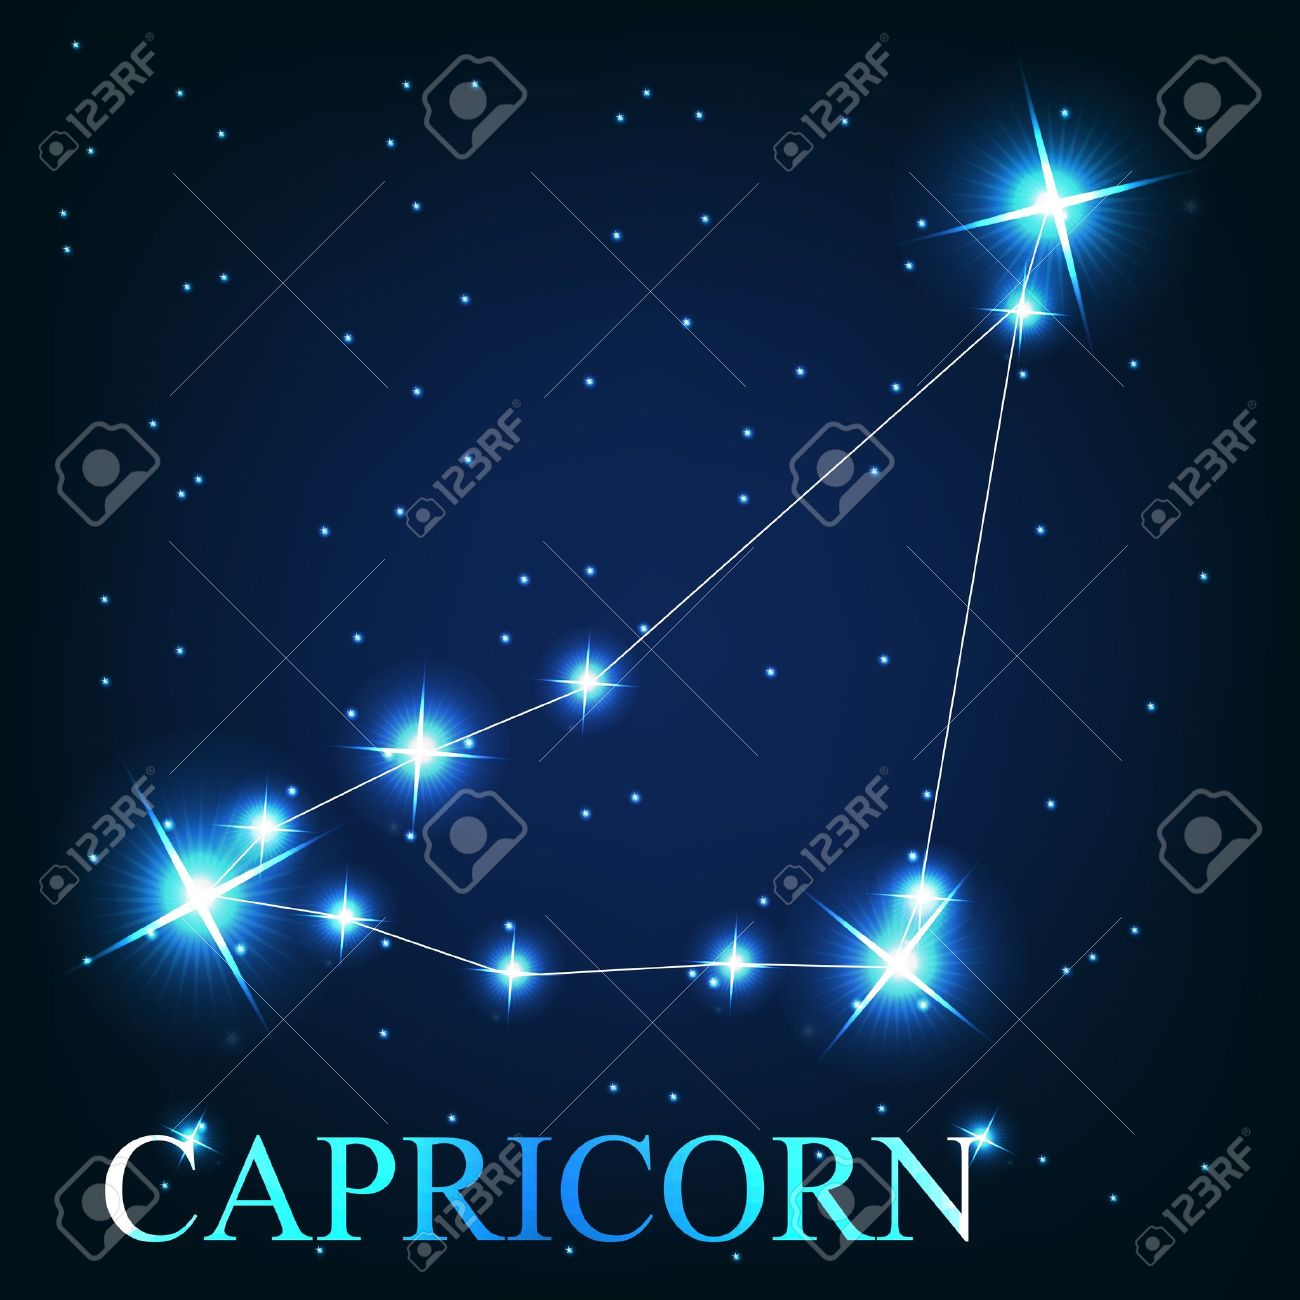 Vector Of The Capricorn Zodiac Sign Of The Beautiful Bright Stars